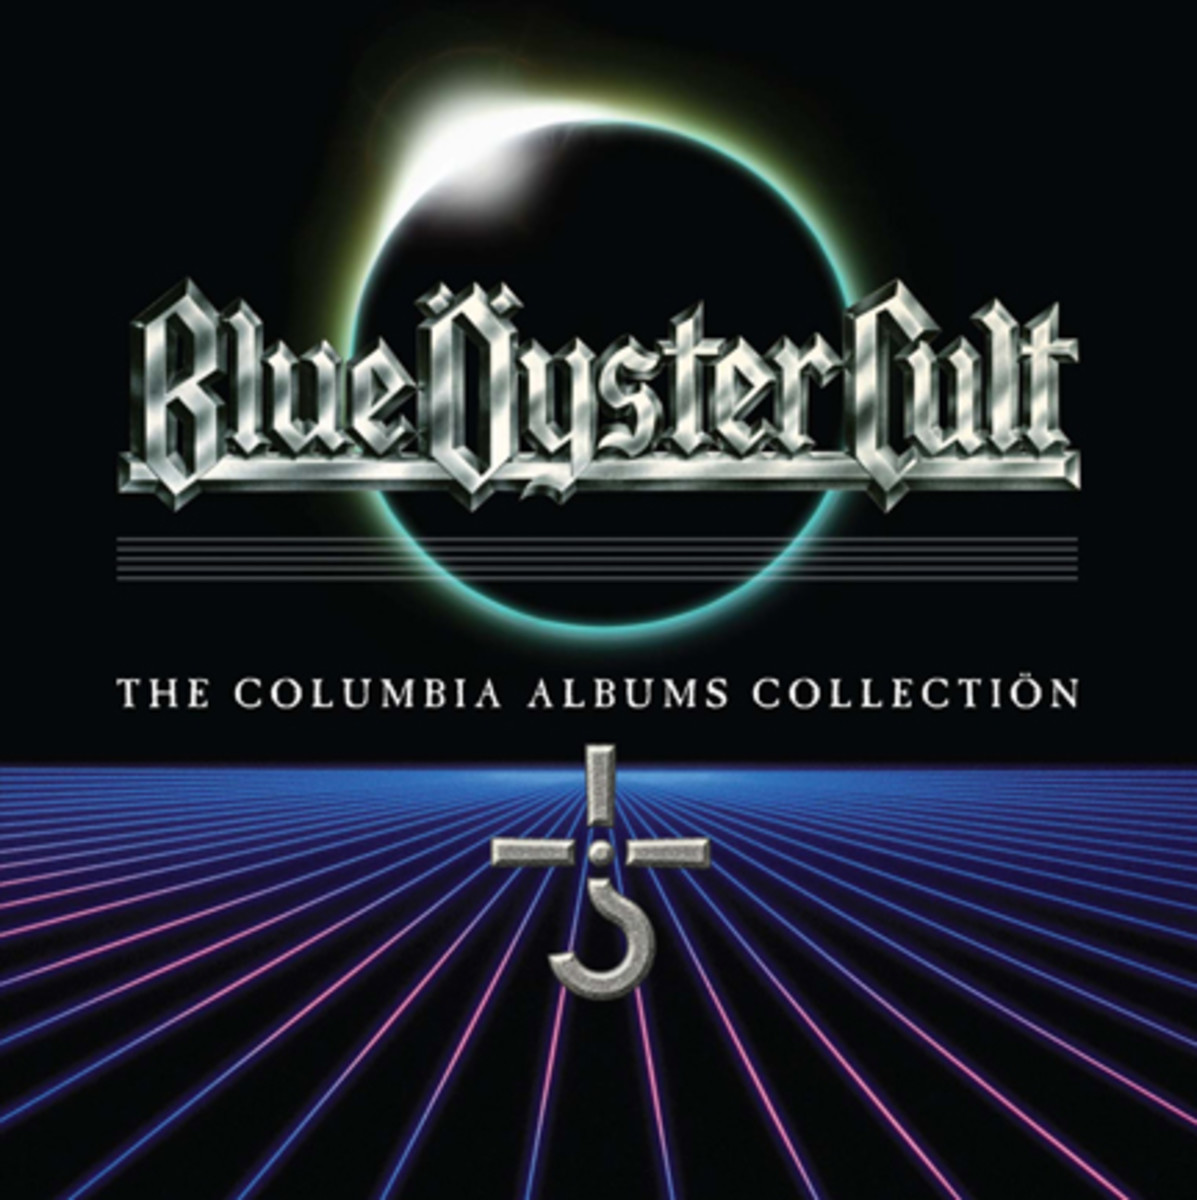 Blue Oyster Cult albums